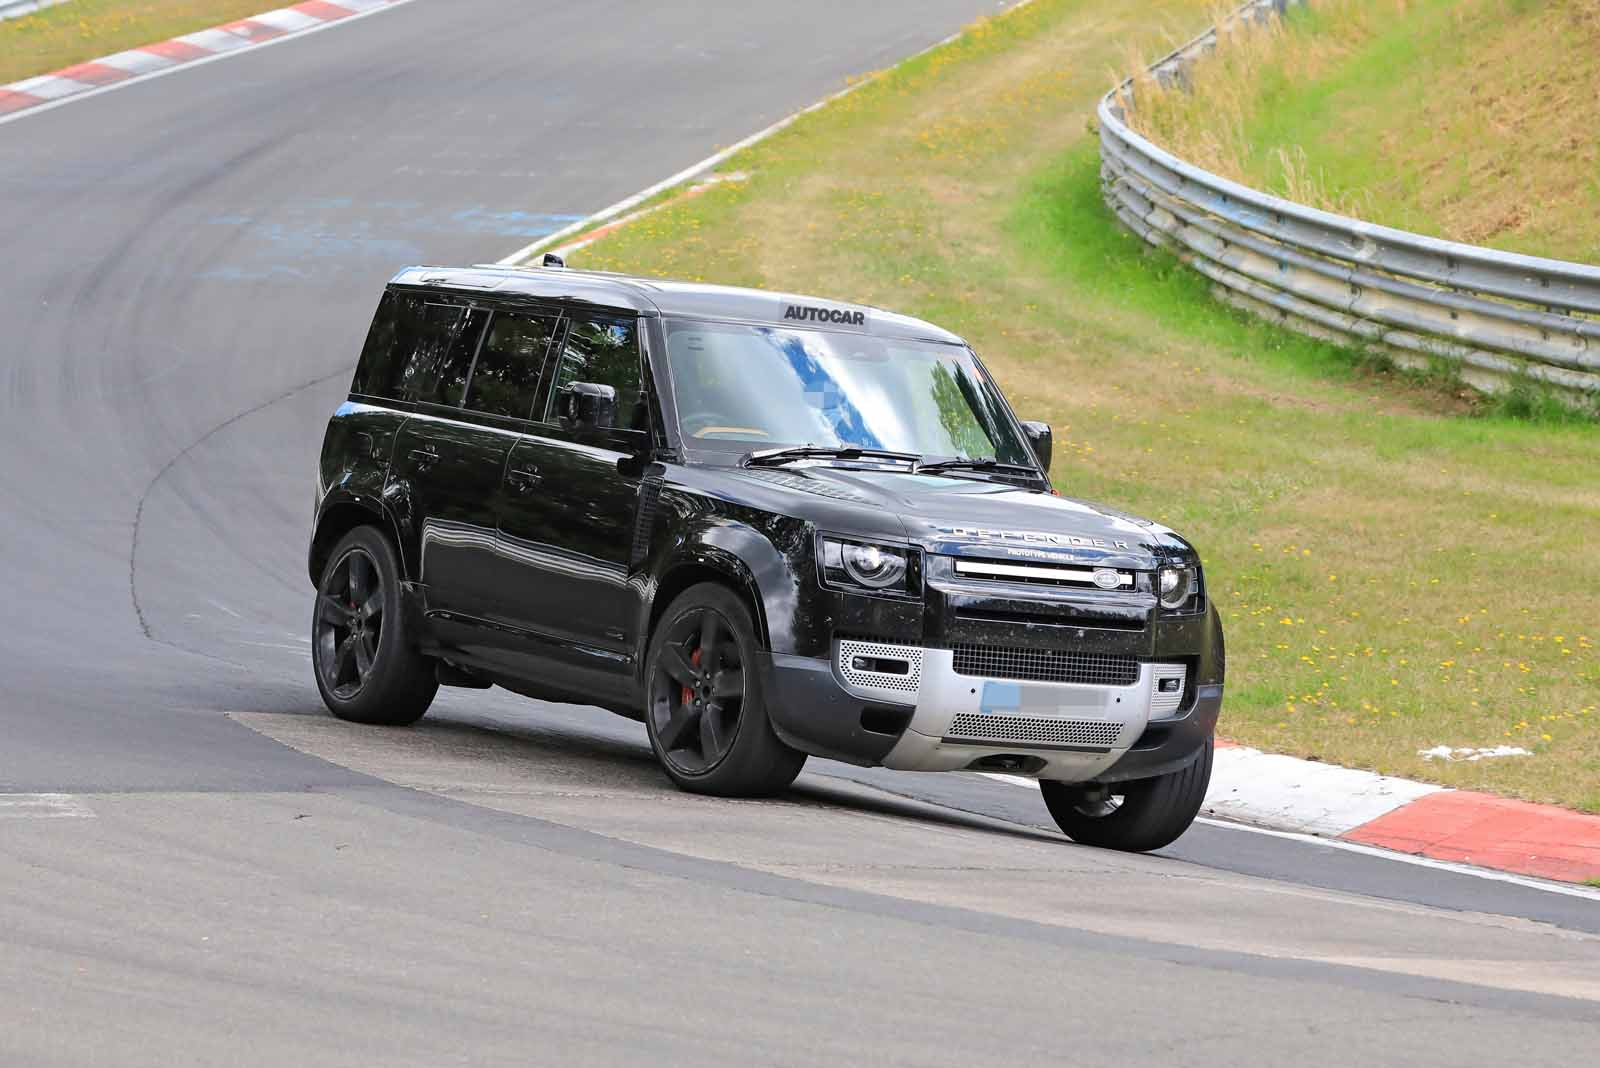 Land Rover Defender V8 on test at Nurburgring